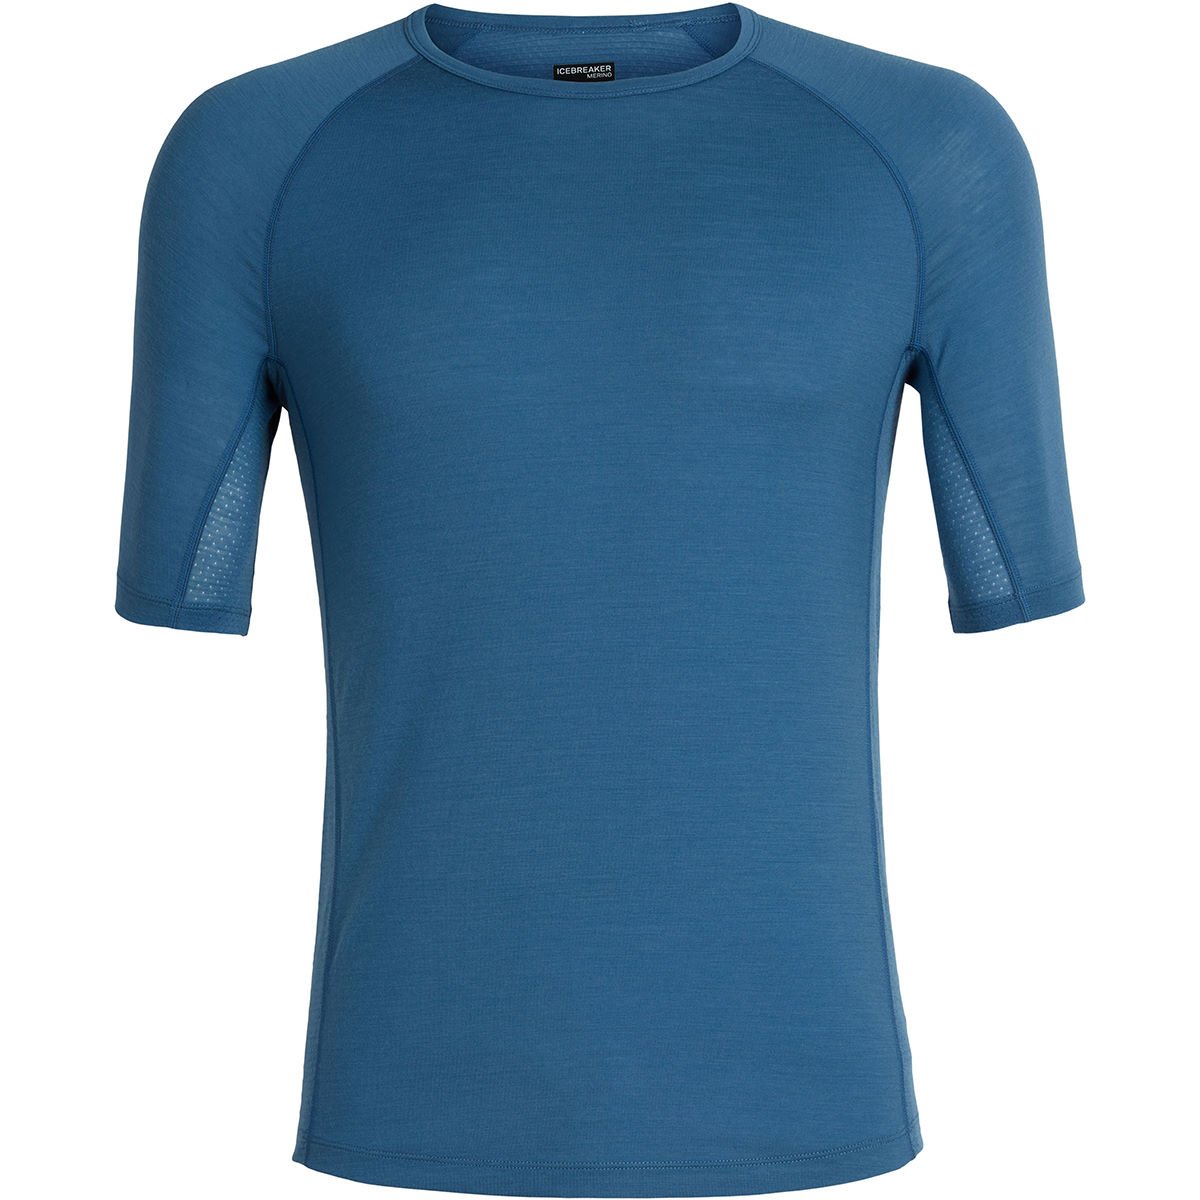 Icebreaker Icebreaker 150 Zone Short Sleeve Crewe Top   Base Layers